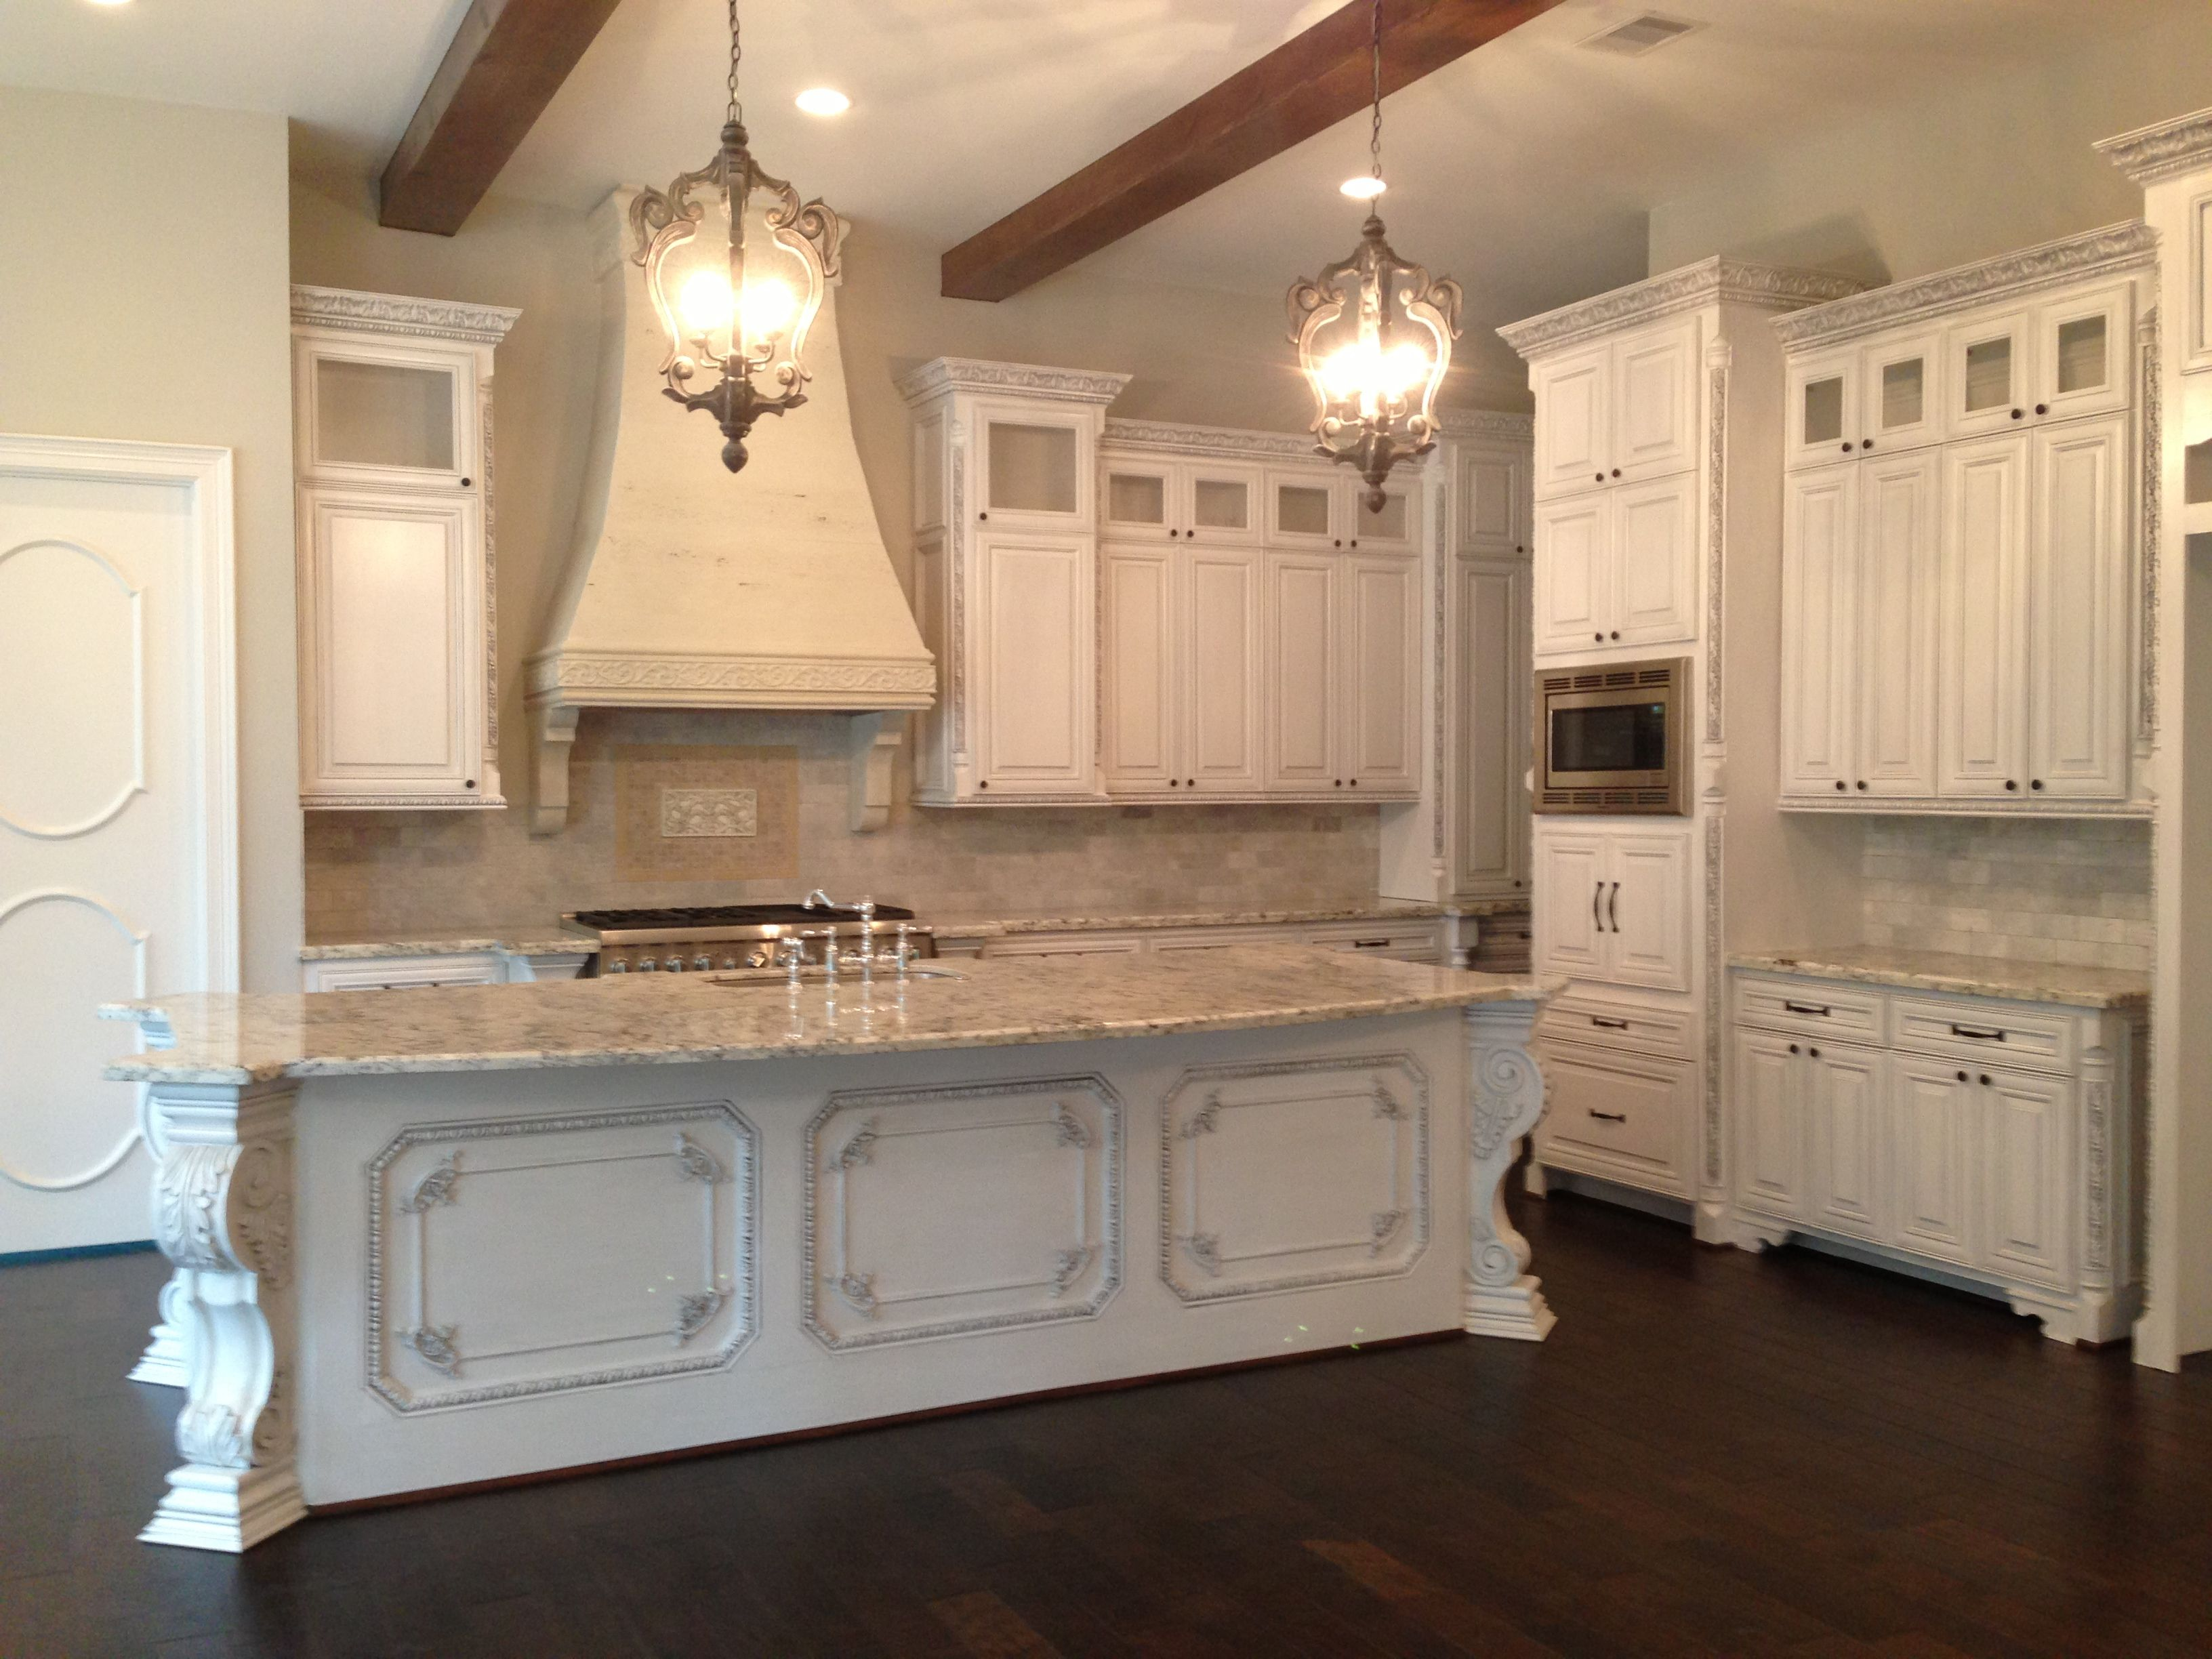 My Finished Kitchen A French European Acadian Inspired White Kitchen With Glazed Cabinets Old World Beams Stonce Cast Kitchen Design White Kitchen Kitchen